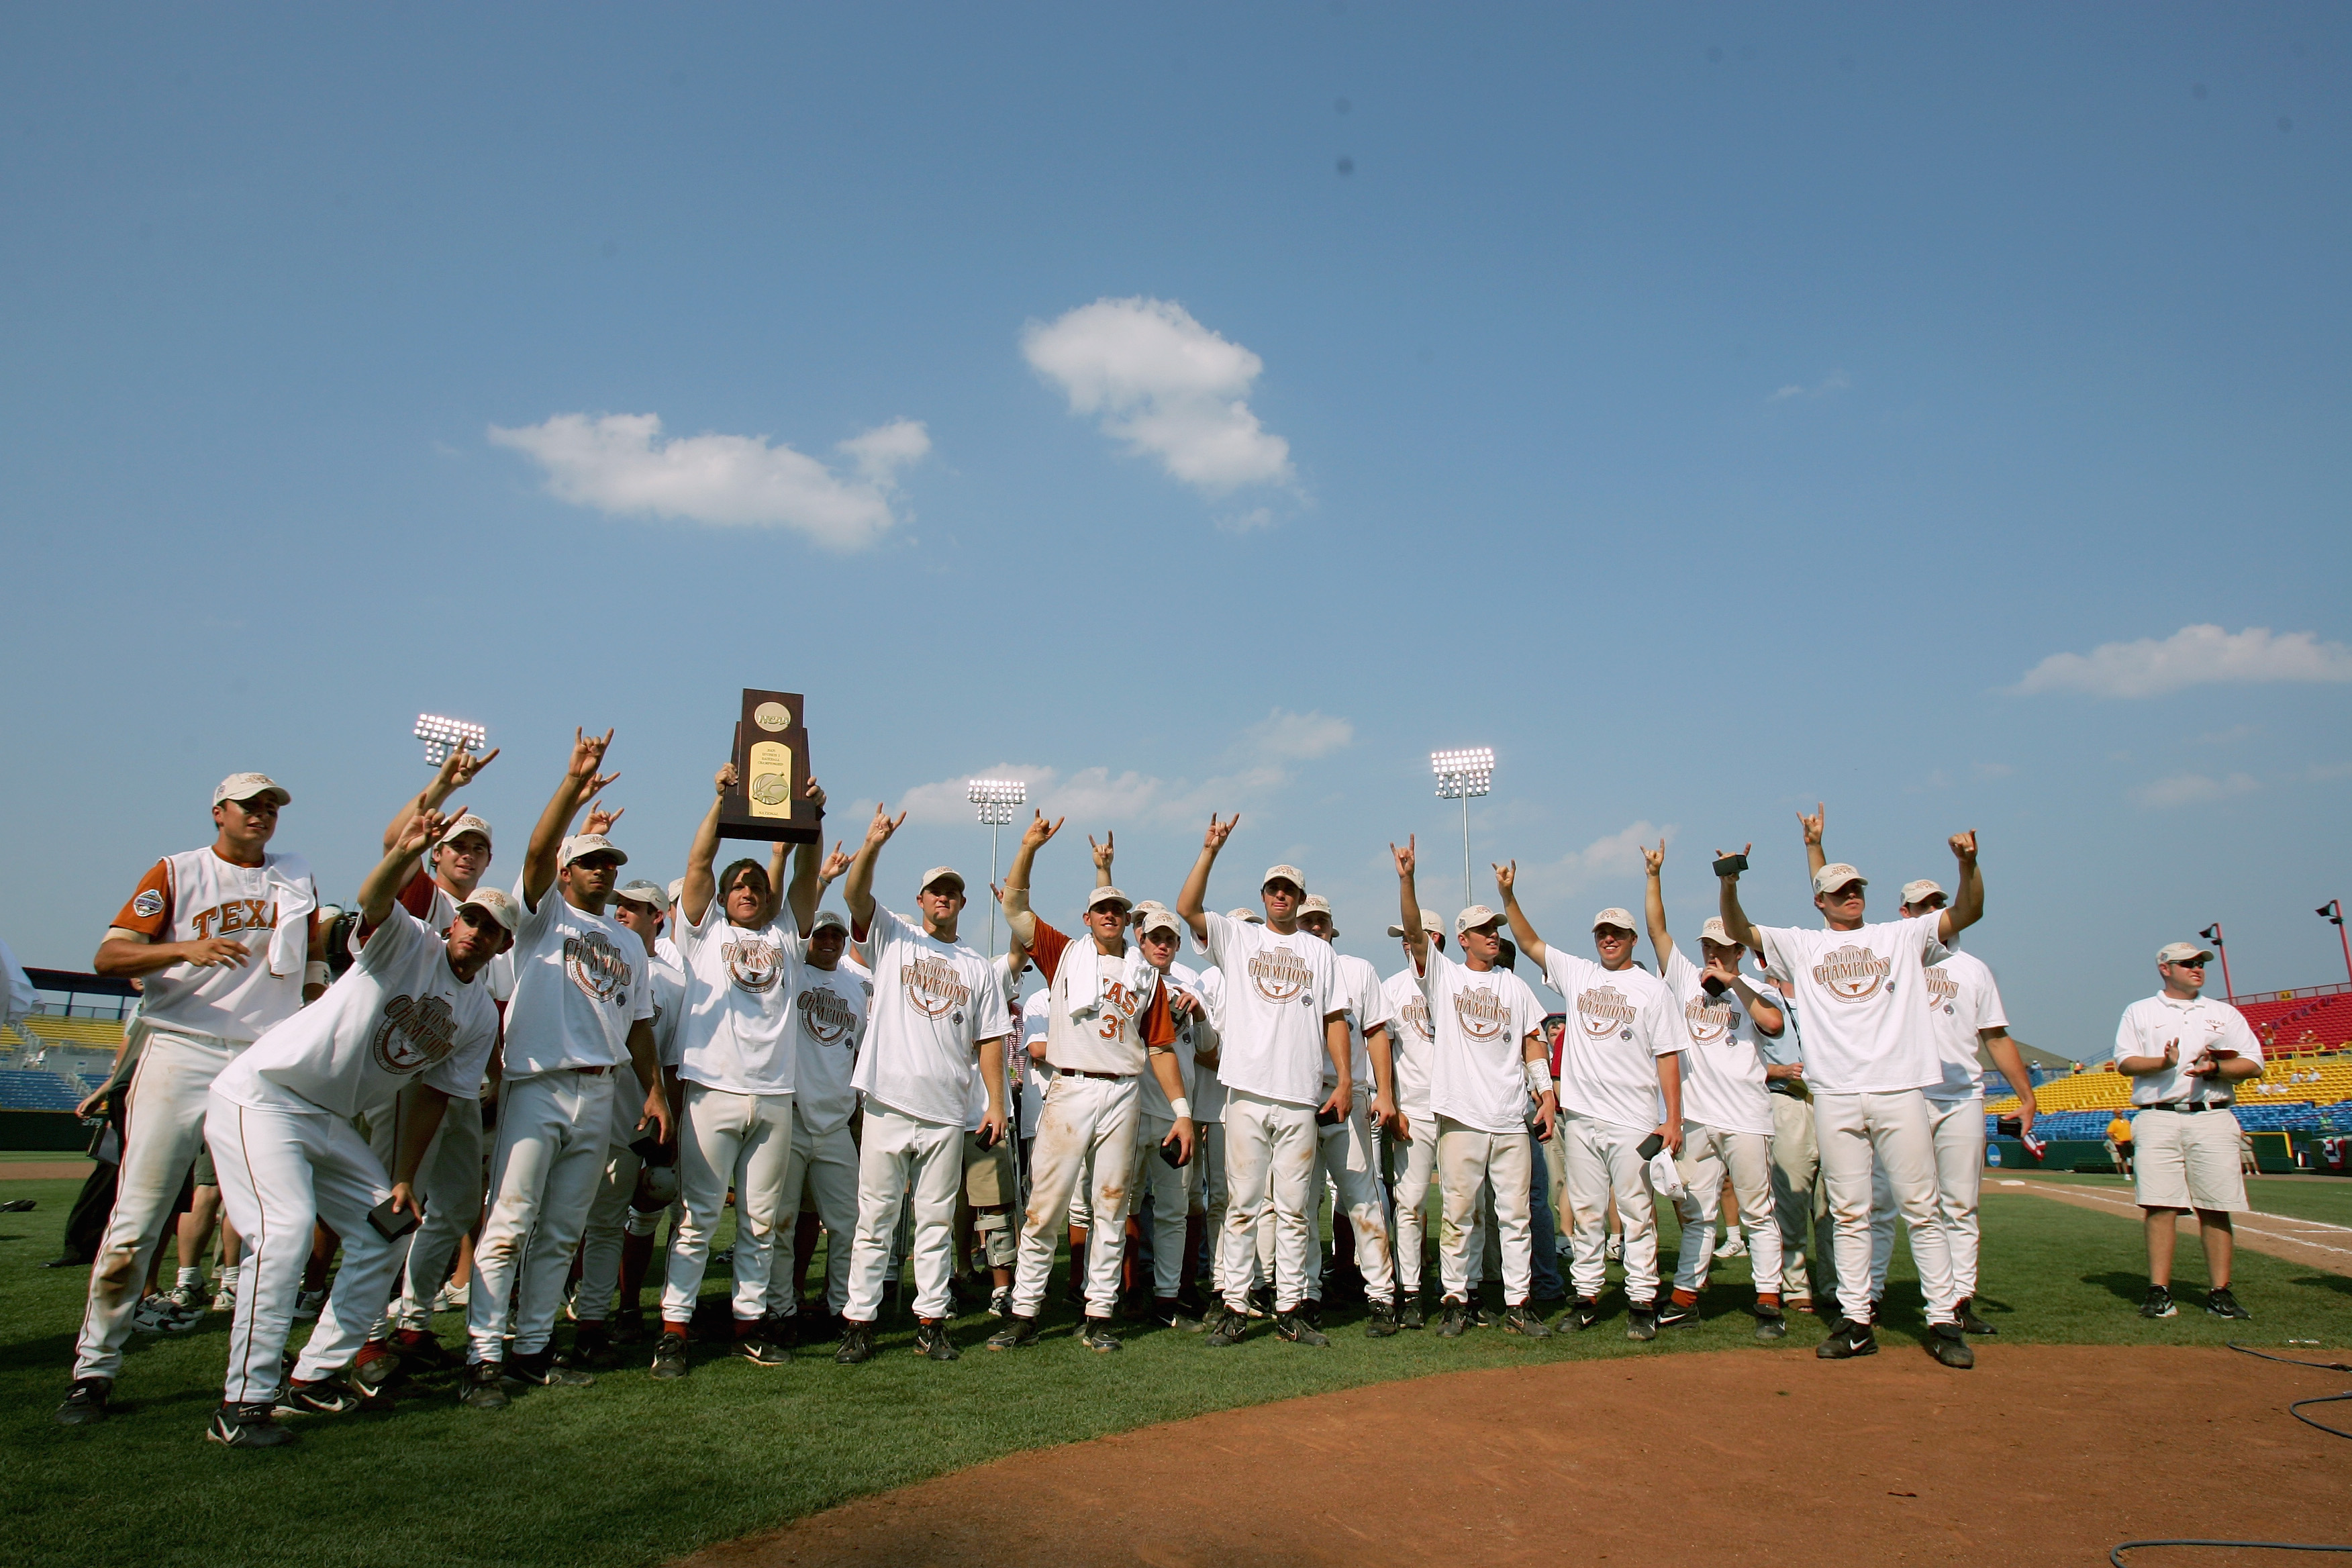 OMAHA, NE - JUNE 26:  Members of the Texas Longhorns celebrate after defeating the Florida Gators 6-2 during Game 2 of the championship series of the 59th College World Series at Rosenblatt Stadium on June 26, 2005 in Omaha, Nebraska.  (Photo by Jed Jacob